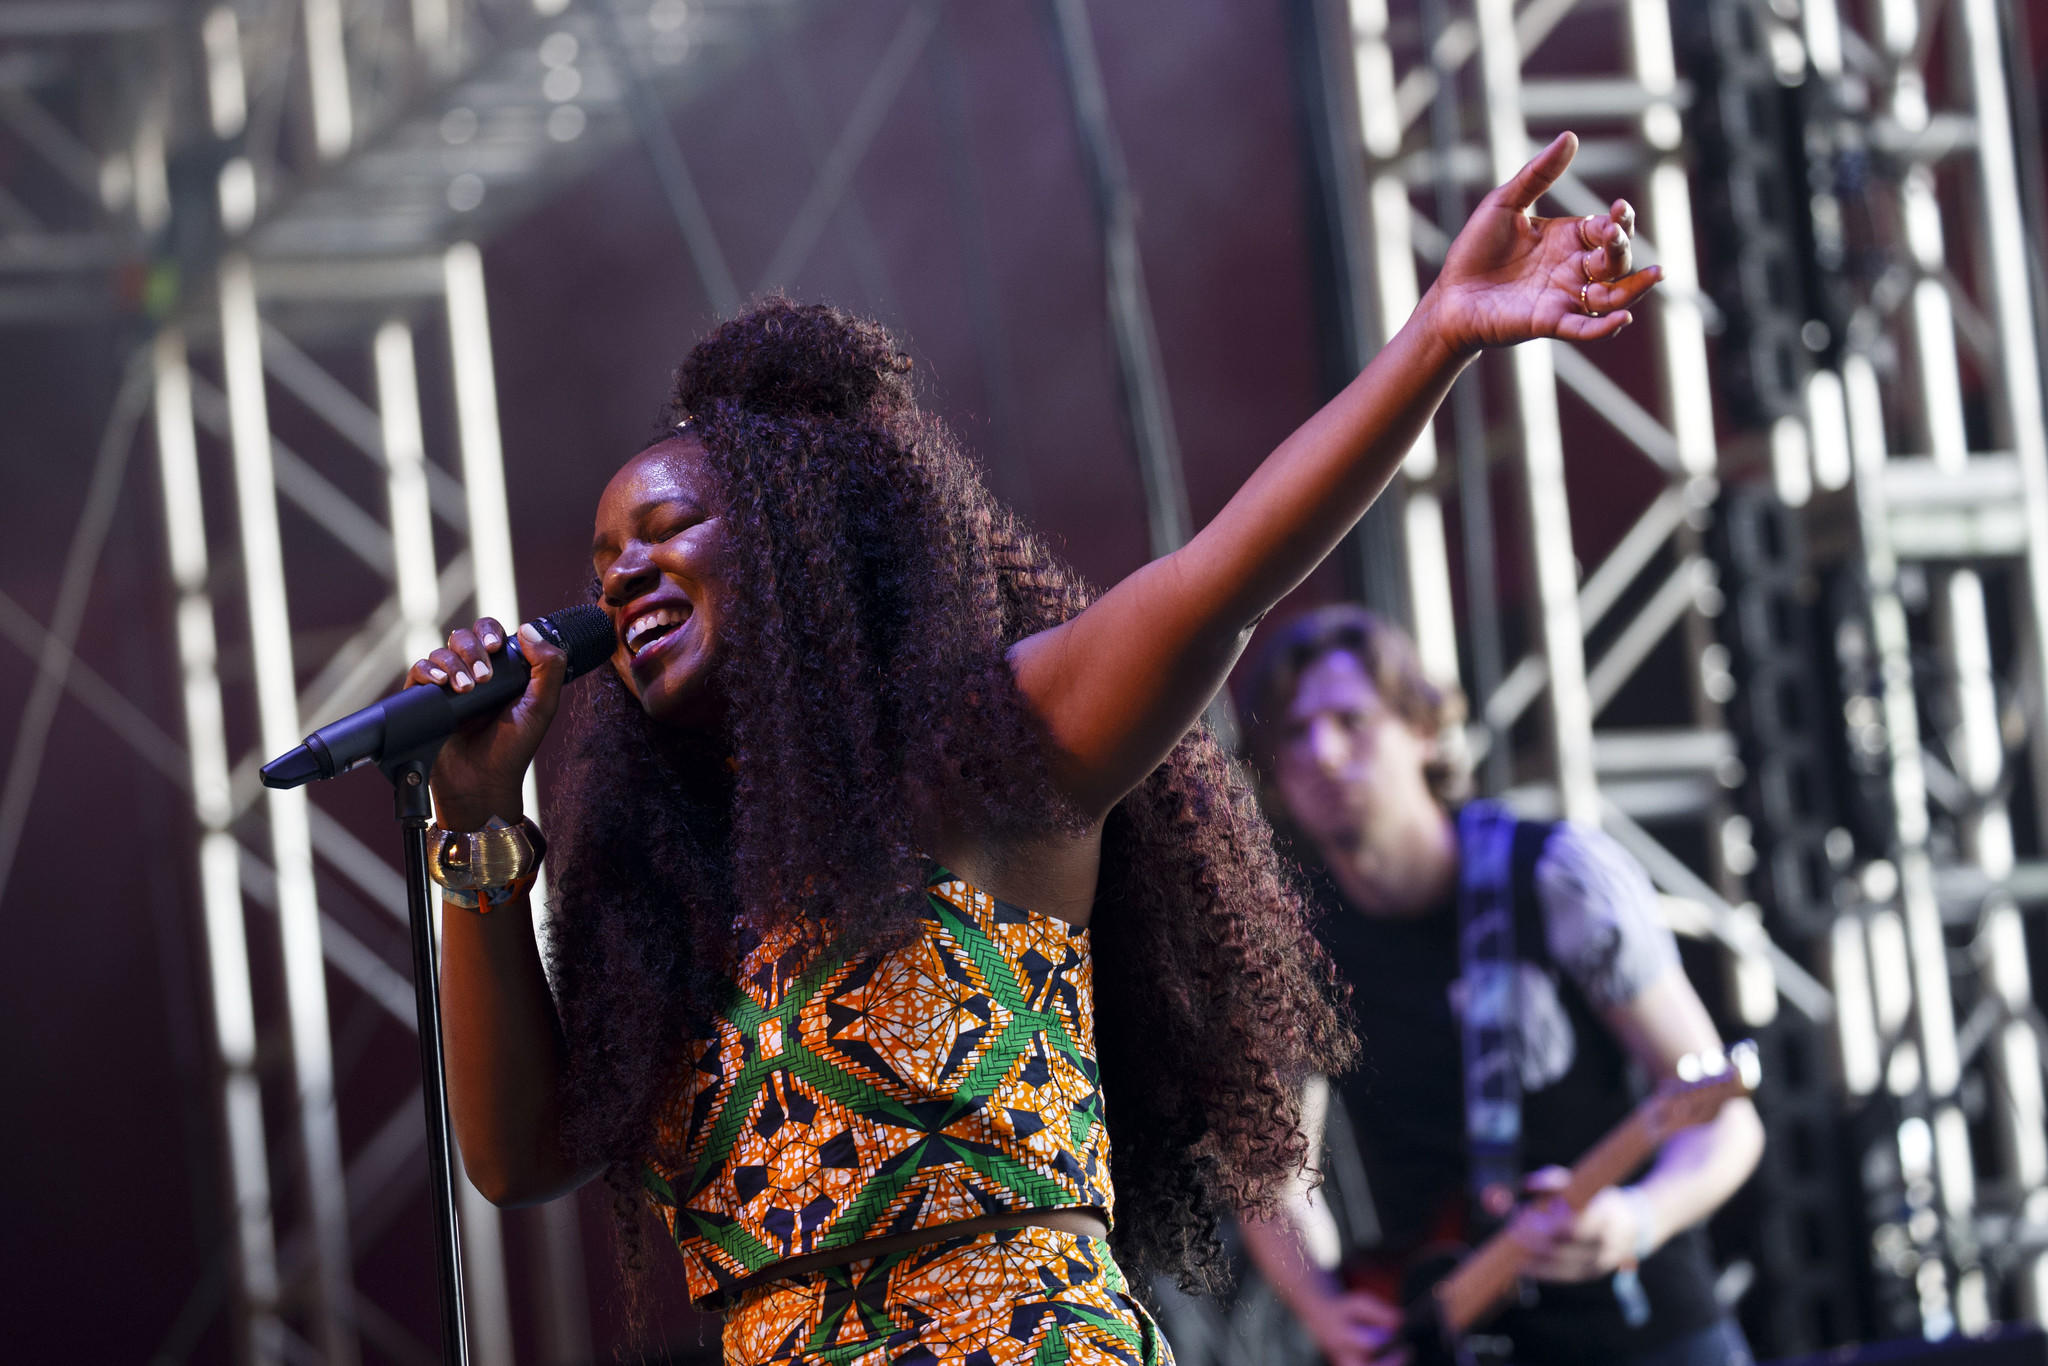 <p>British singer-songwriter Neo Jessica Joshua, known as NAO, performs.</p>